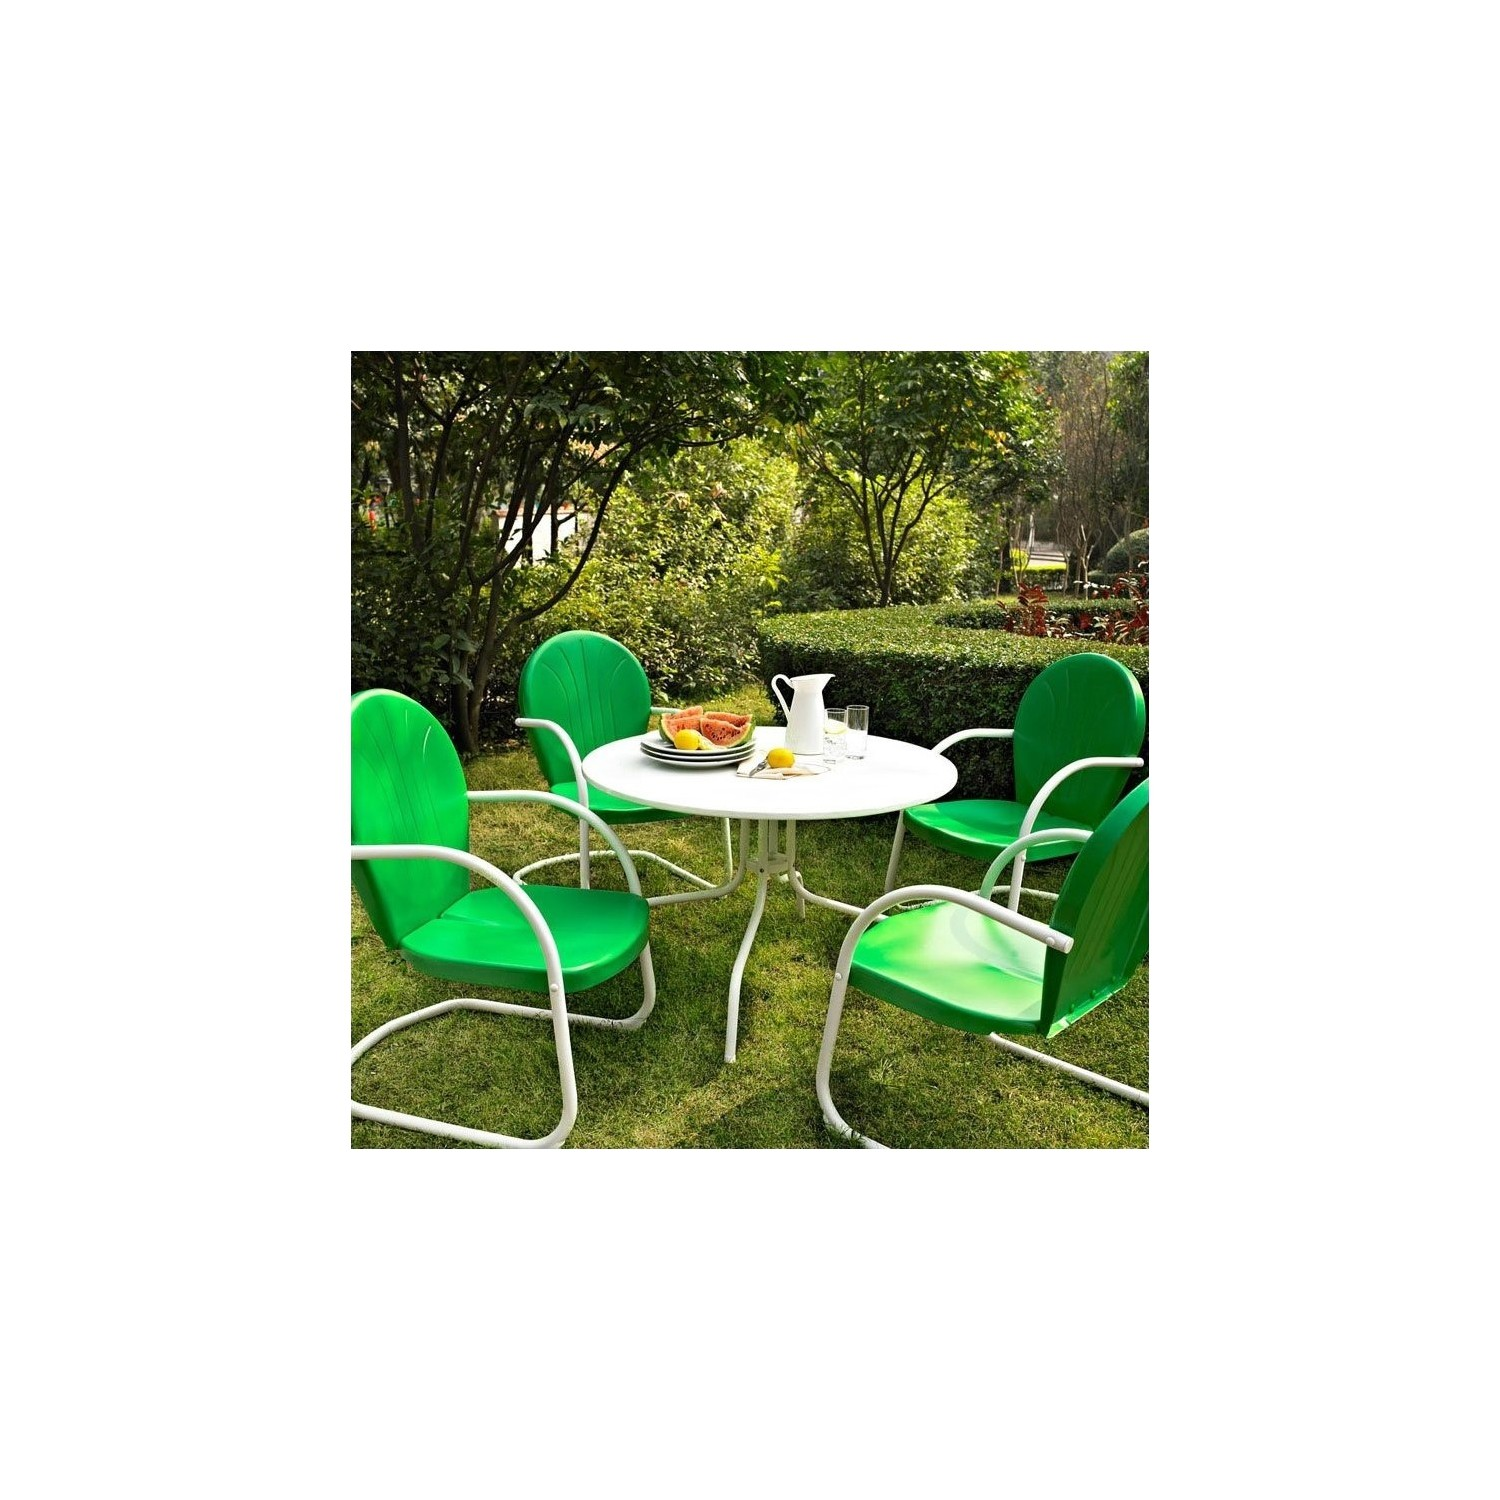 Griffith contemporary 5 piece casual dining patio set online only